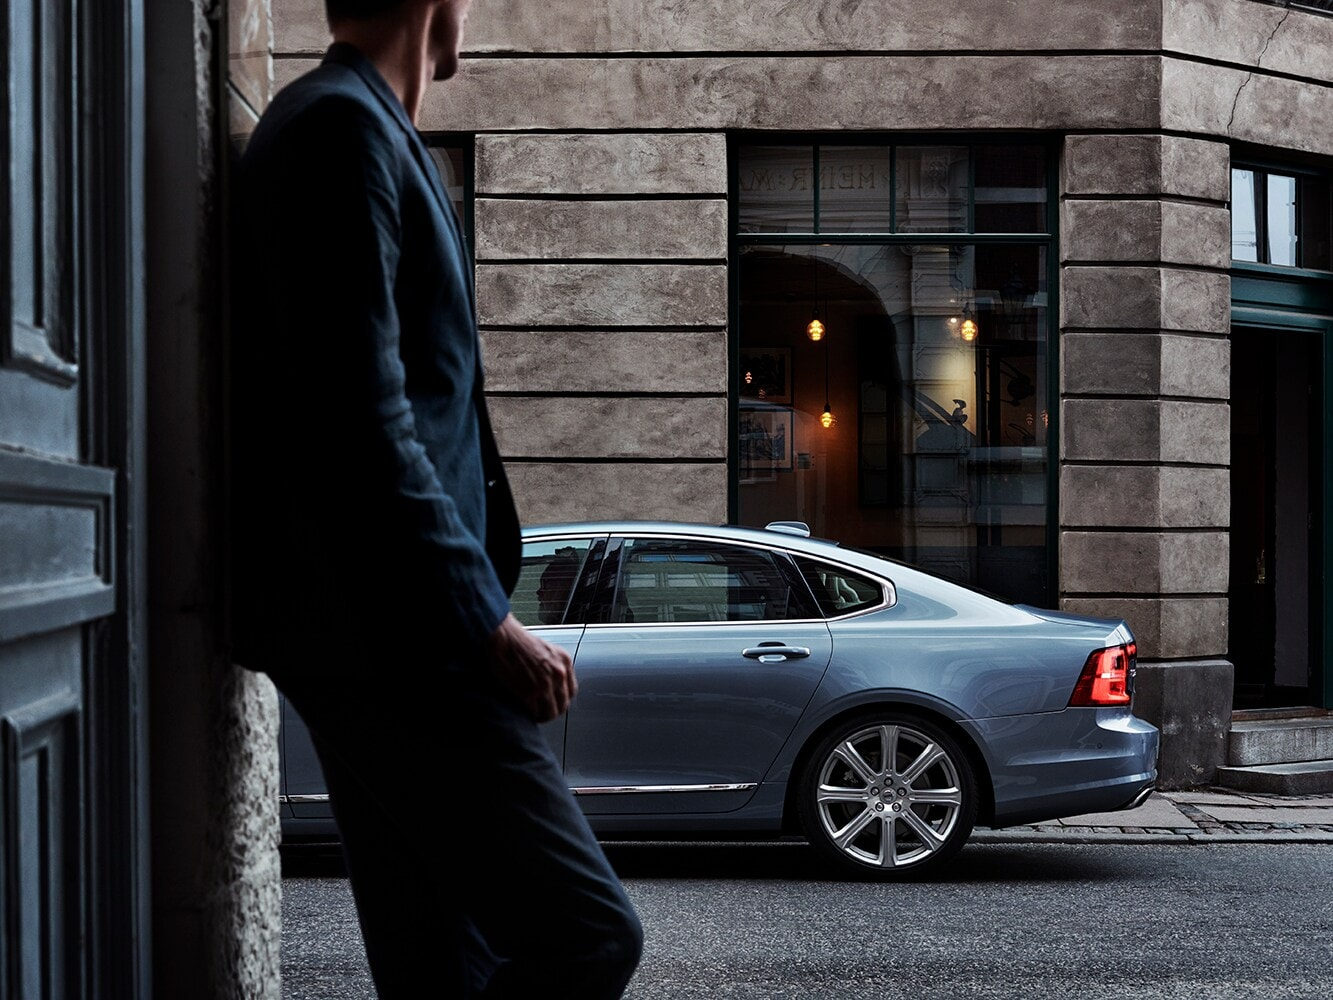 Candid portrait shot of a driver in a Volvo S90